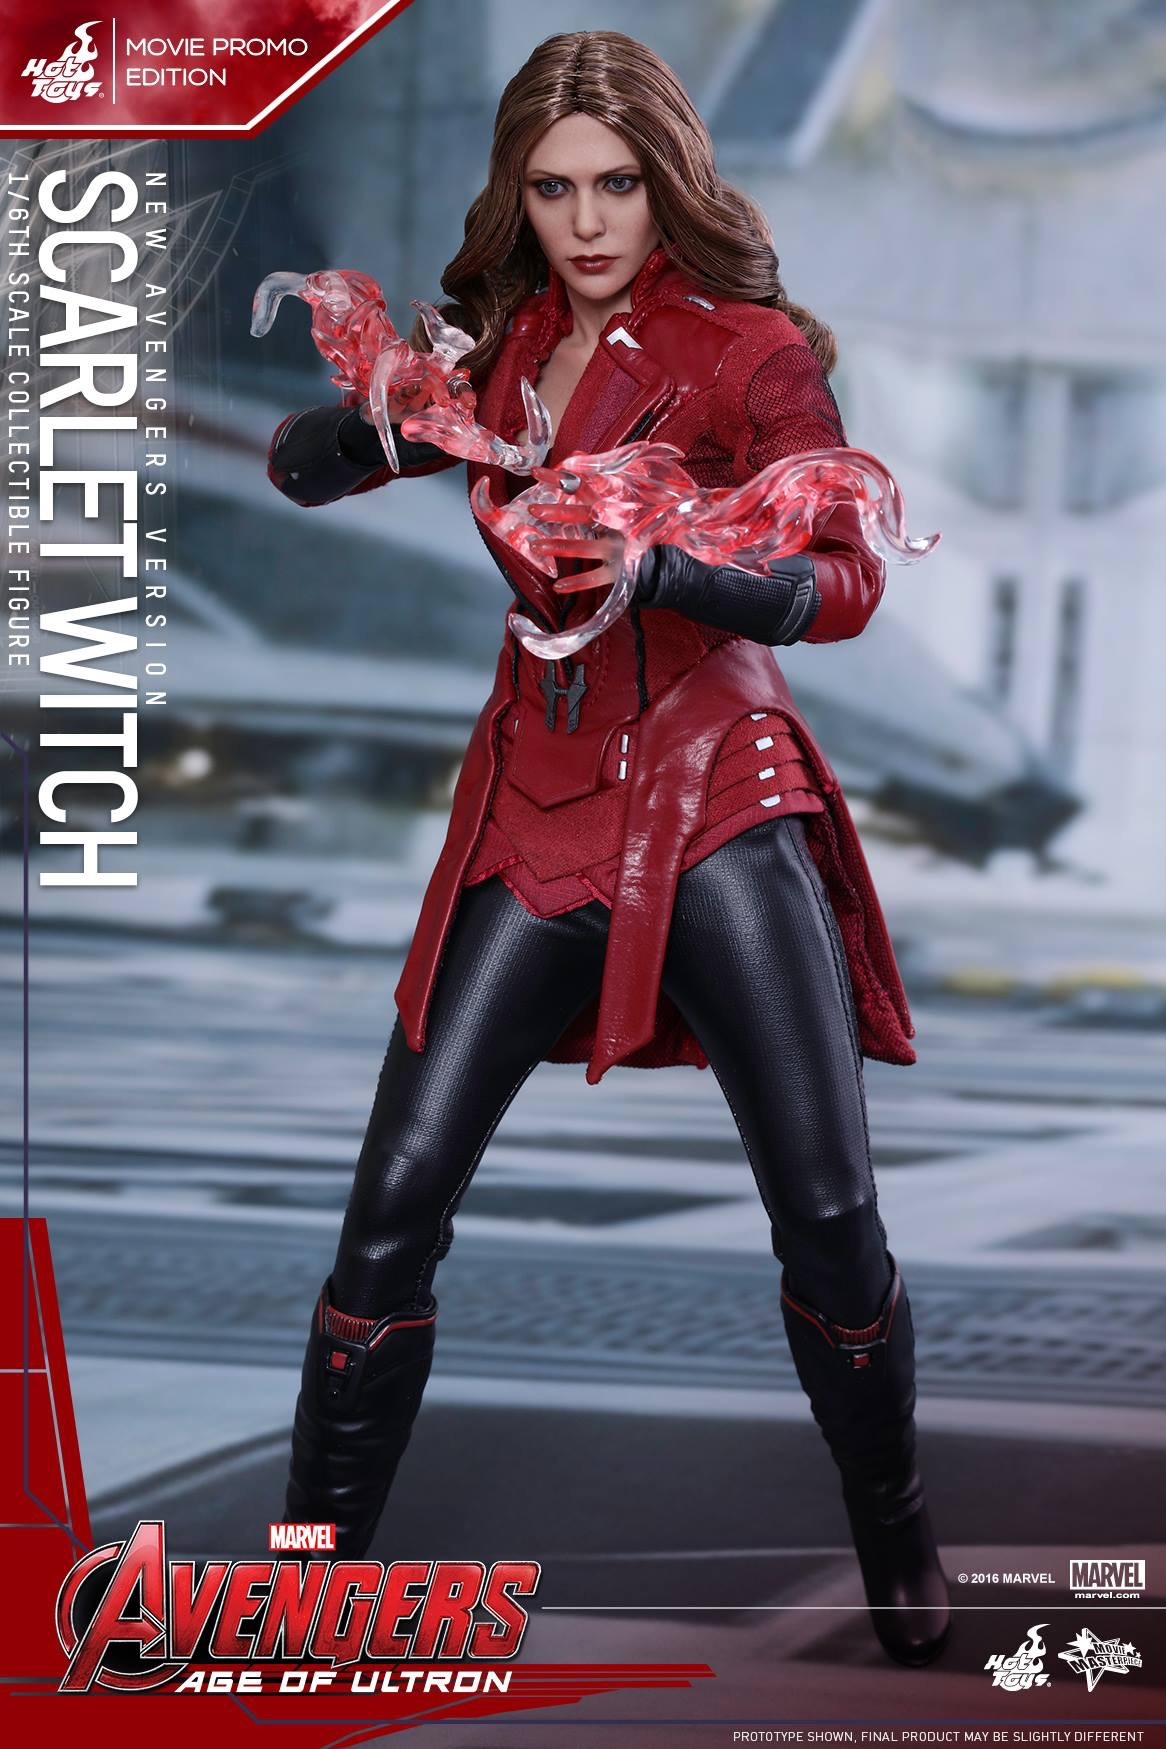 AVENGERS 2 : AGE OF ULTRON - SCARLET WITCH (MM$357) 160415024953494262